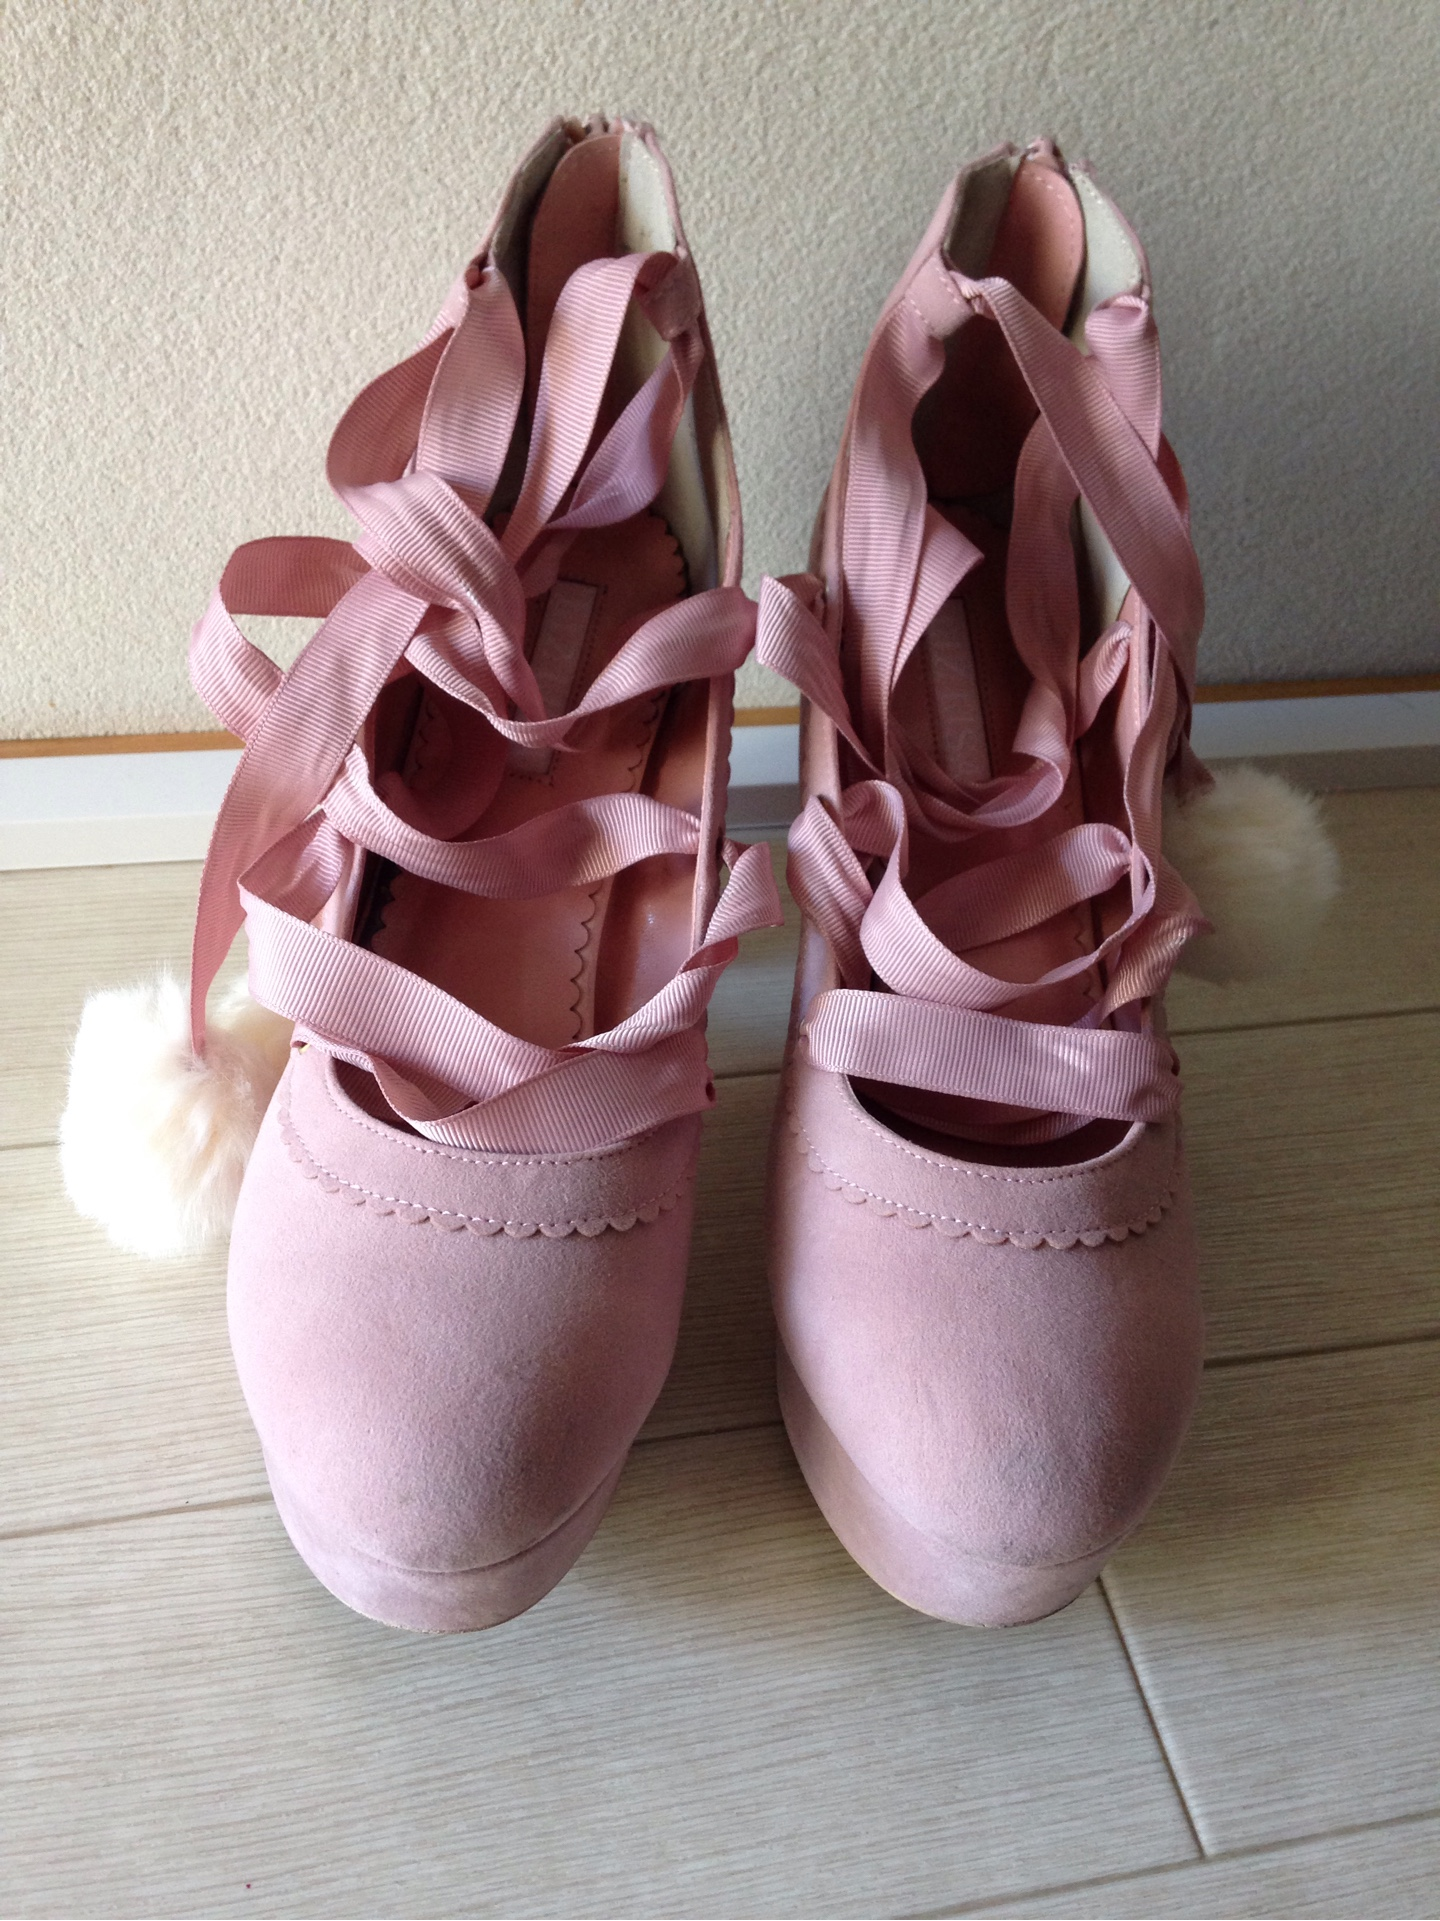 c4502d3c7 Flaw【LIZ LISA】pre-owned Pink Pom-pom Pumps Shoes 0266 – You and Me ...